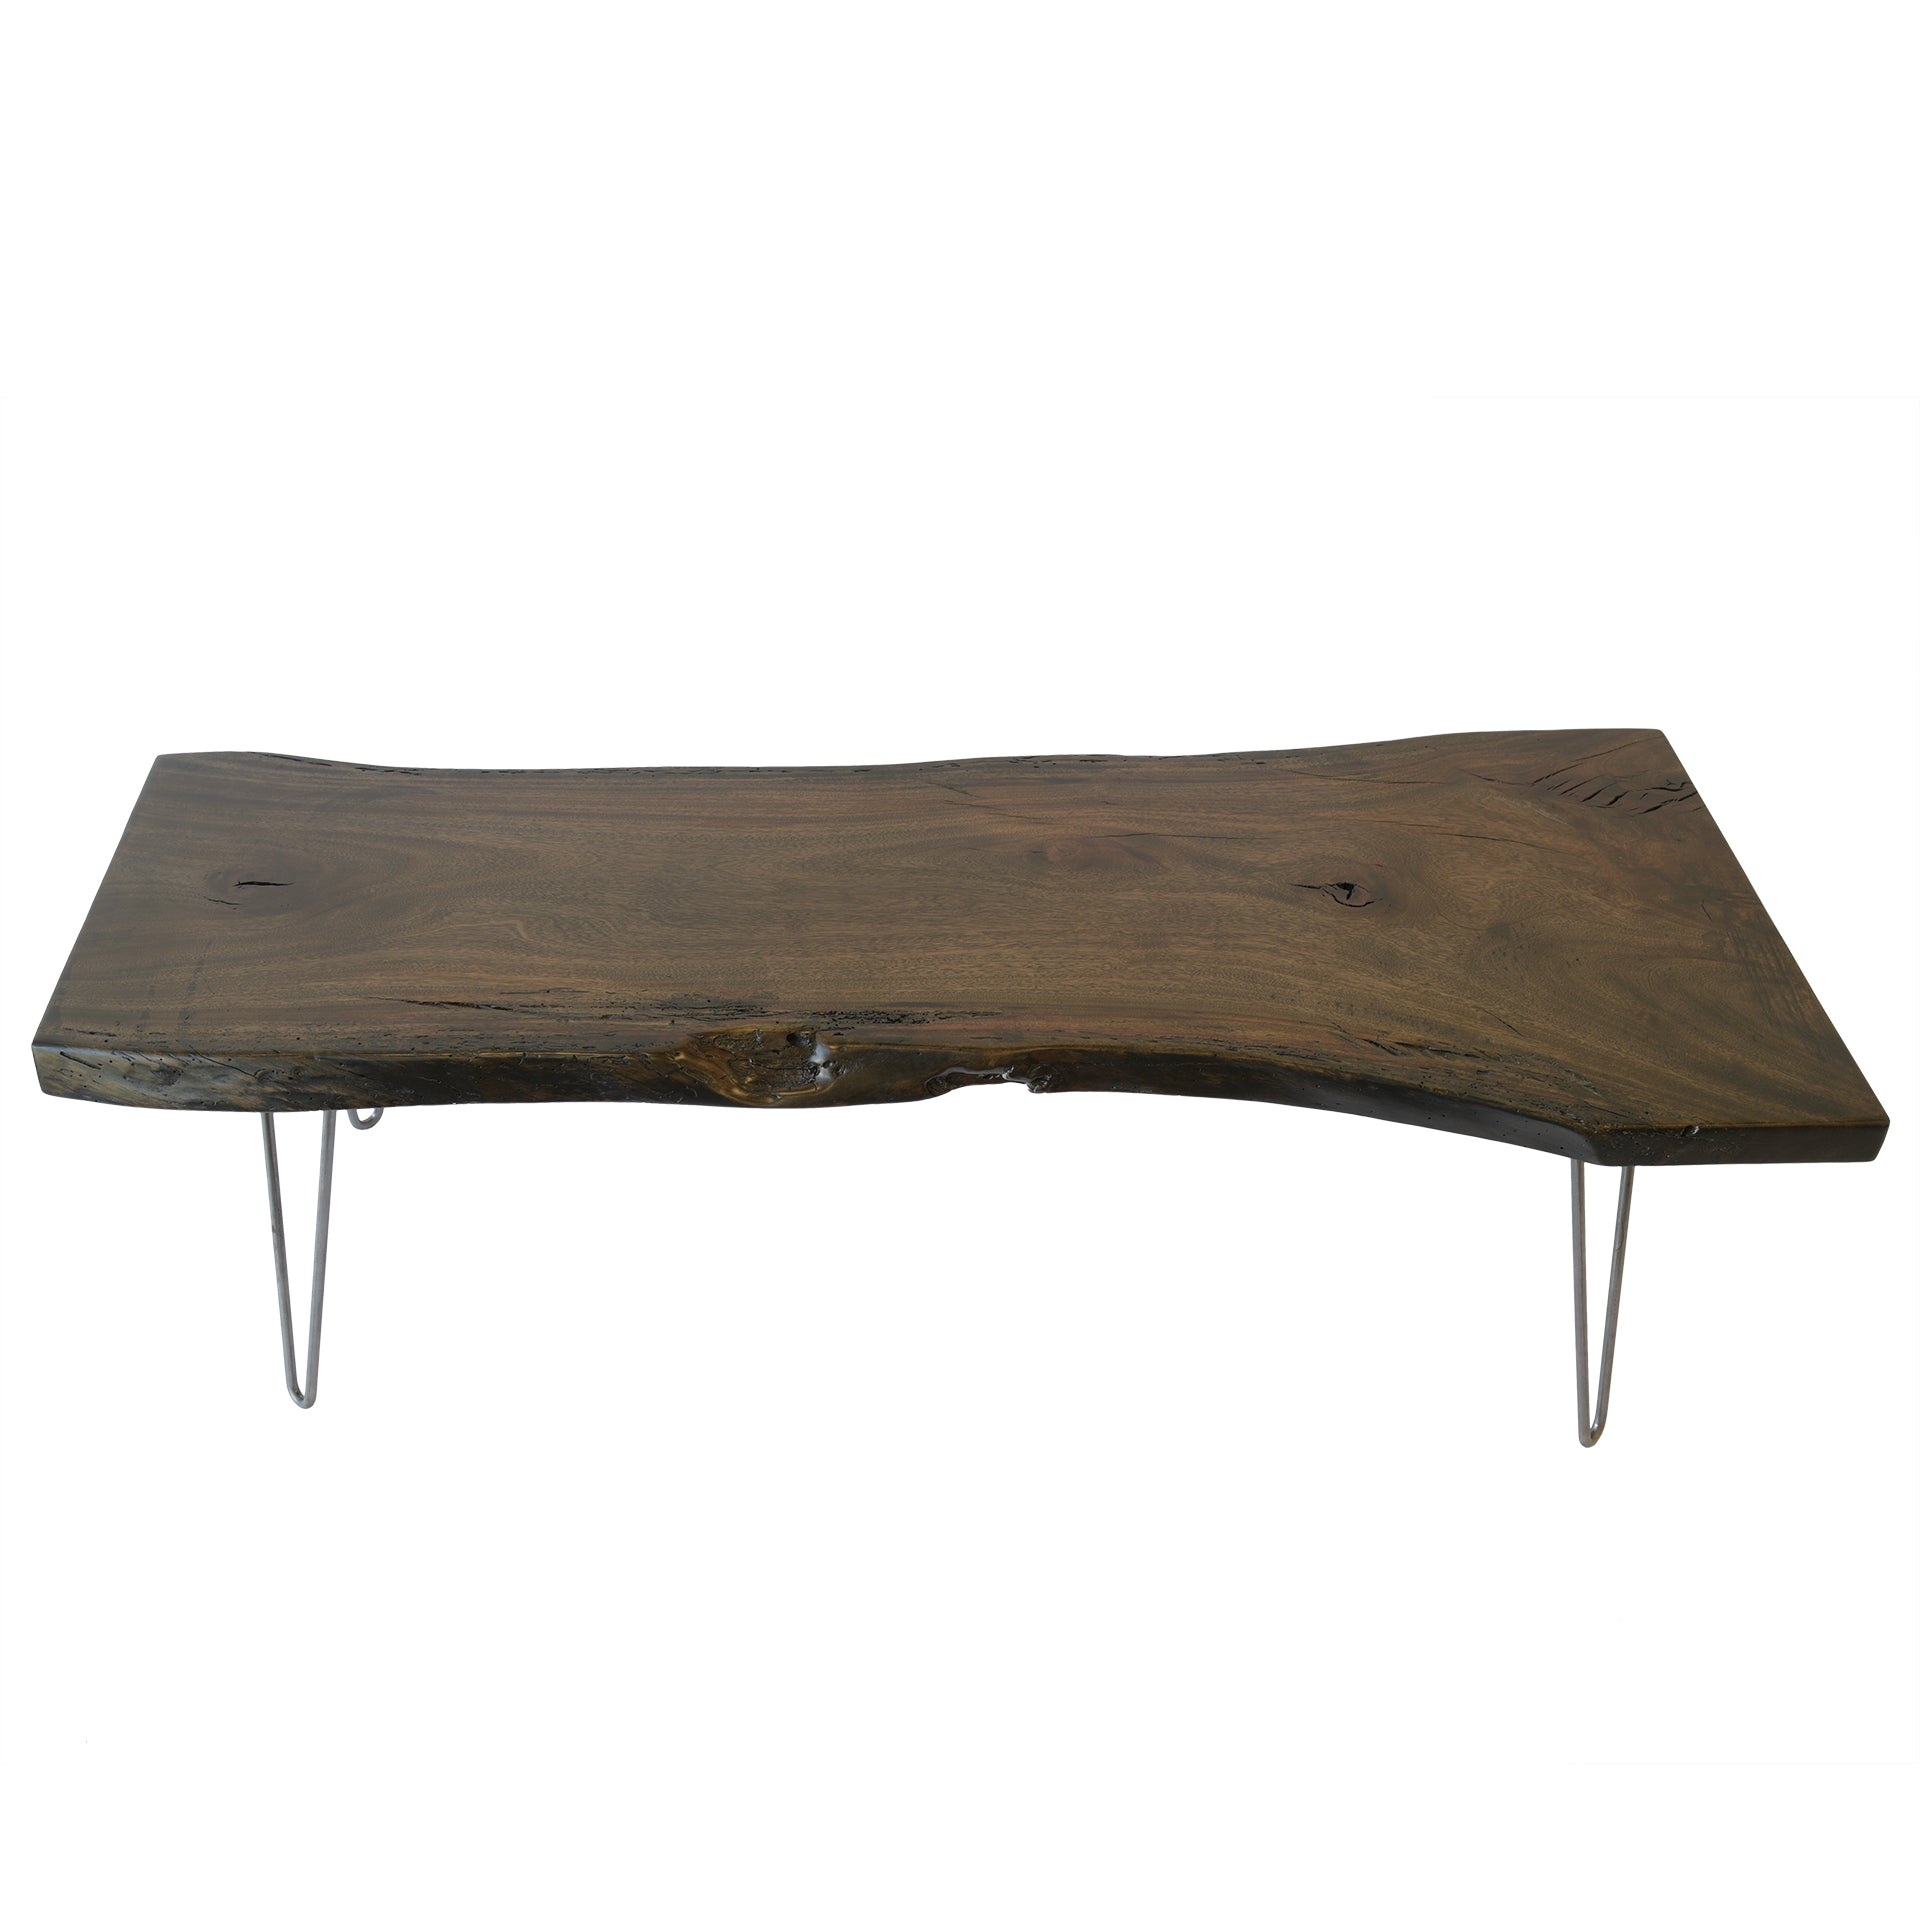 Live Edge Reclaimed Rustic Wood Slab Coffee Table